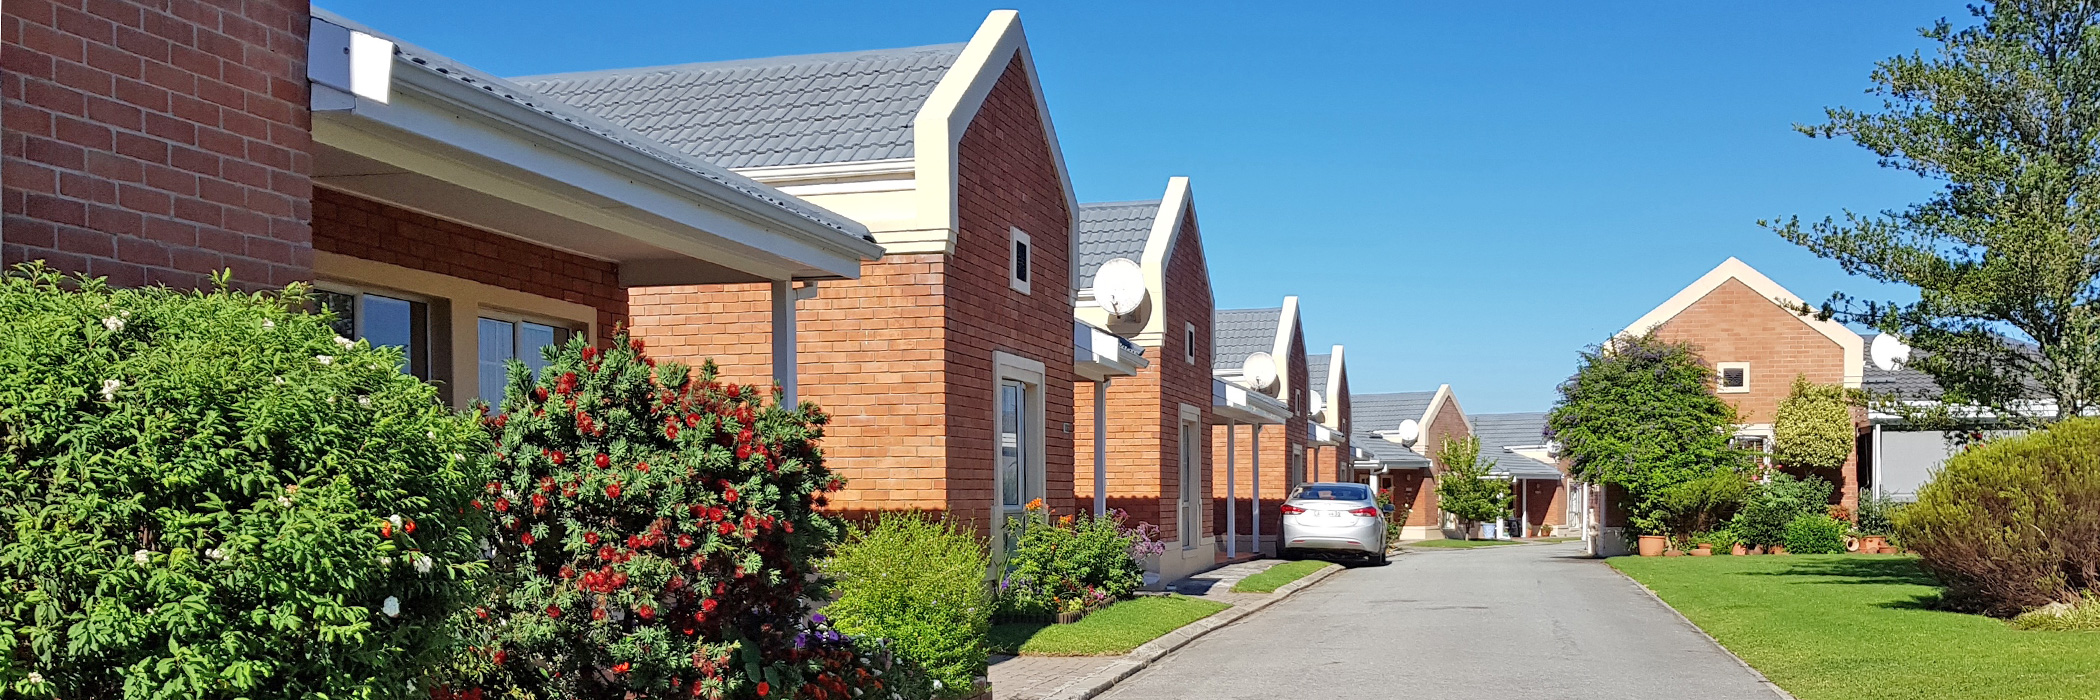 property-types-bergville-retirement-village